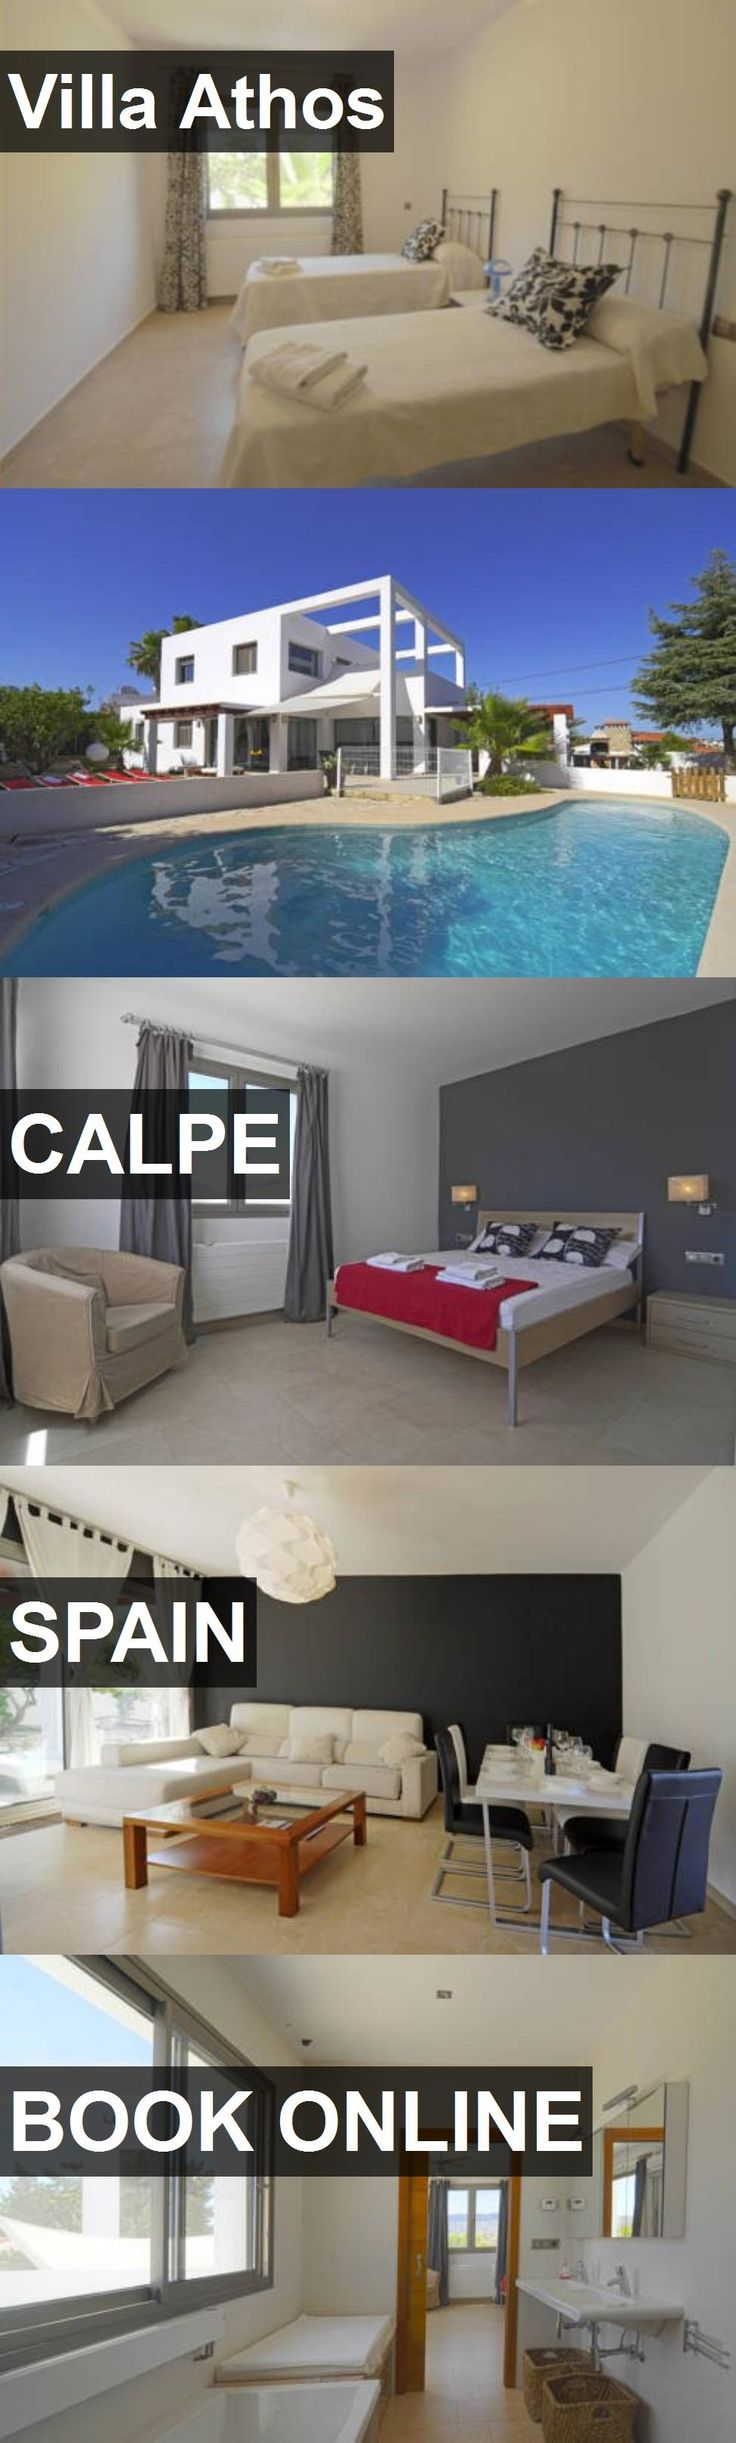 Hotel Villa Athos in Calpe, Spain. For more information, photos, reviews and best prices please follow the link. #Spain #Calpe #travel #vacation #hotel